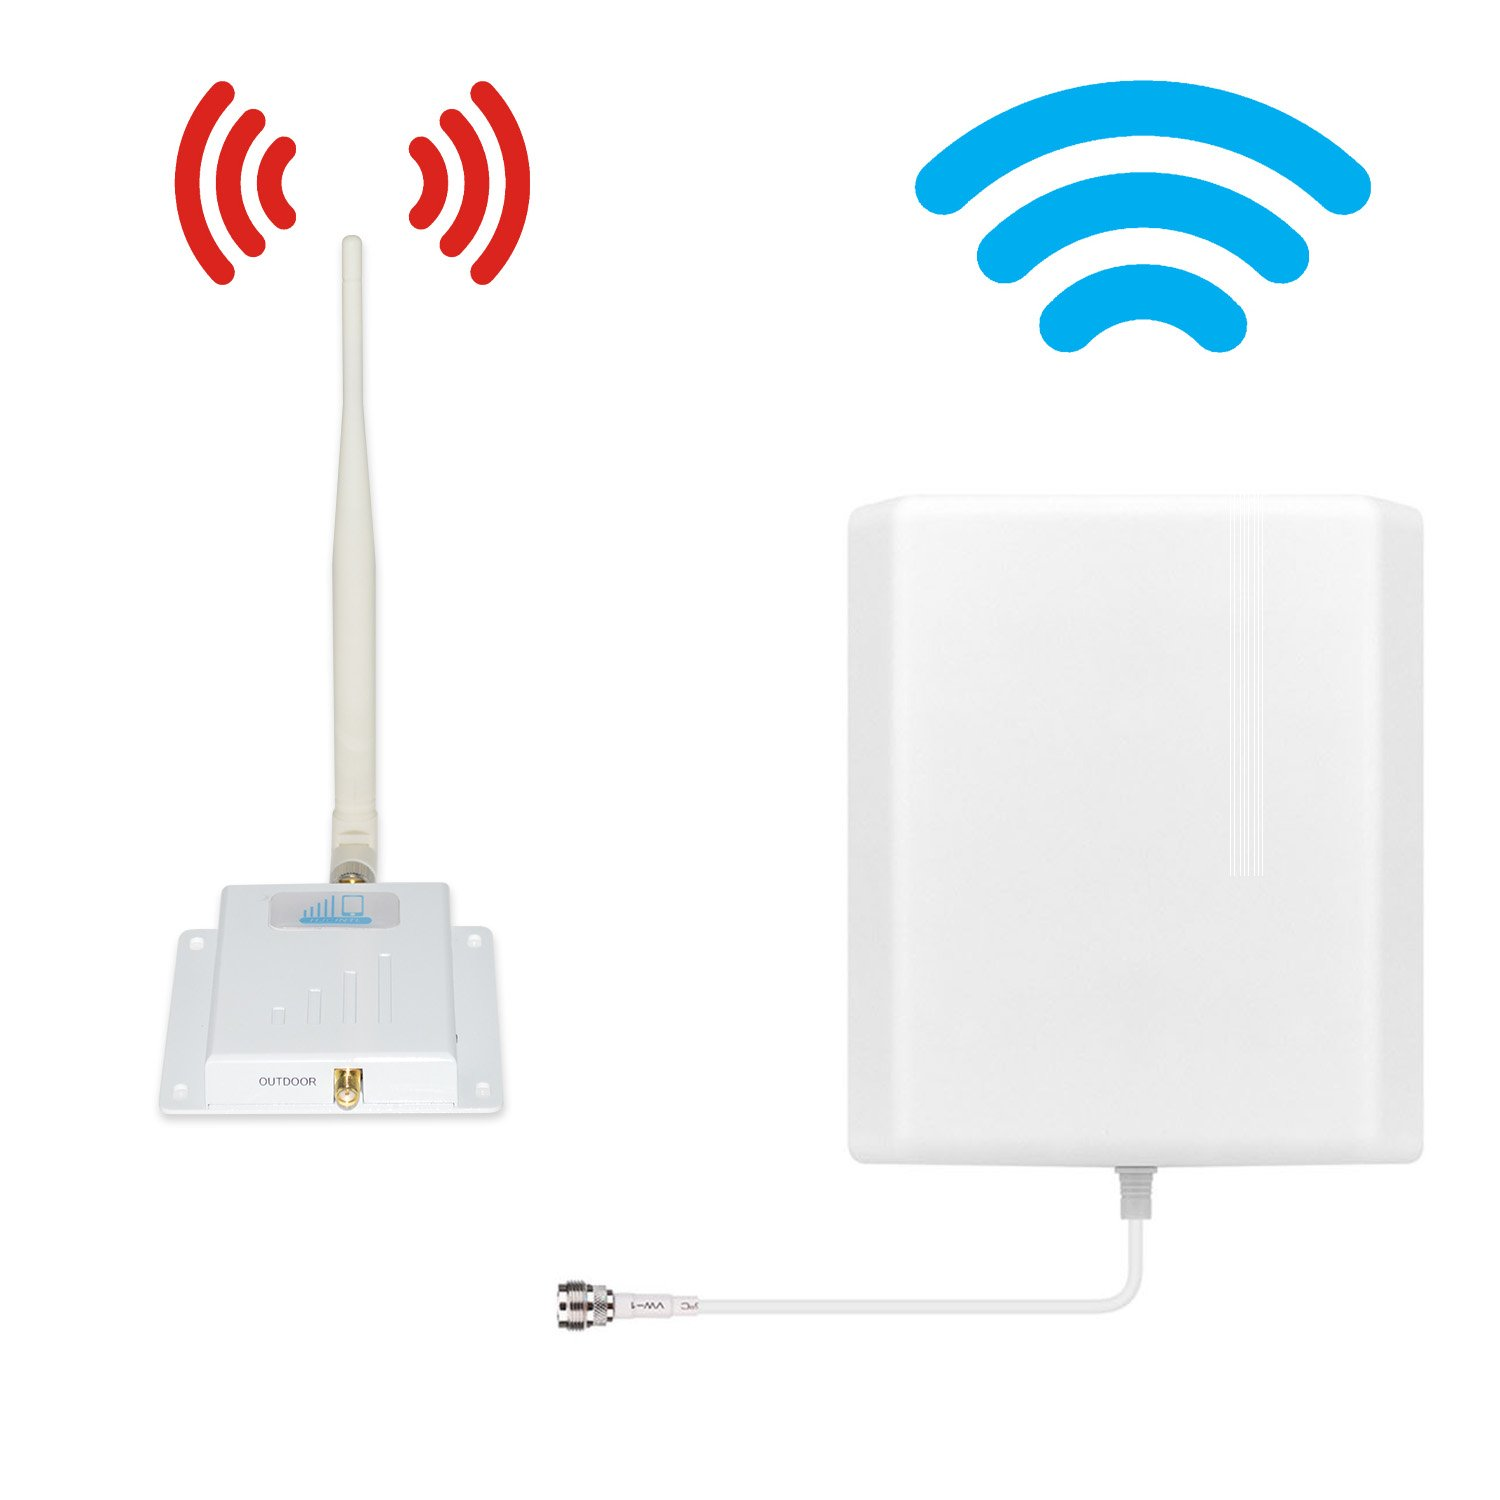 ATT T-Mobile Cell Phone Signal Booster 4G Lte Cell Signal Booster HJCINTL FDD 700MHz Home Mobile Phone Signal Booster Amplifier Kit with Panel/Whip